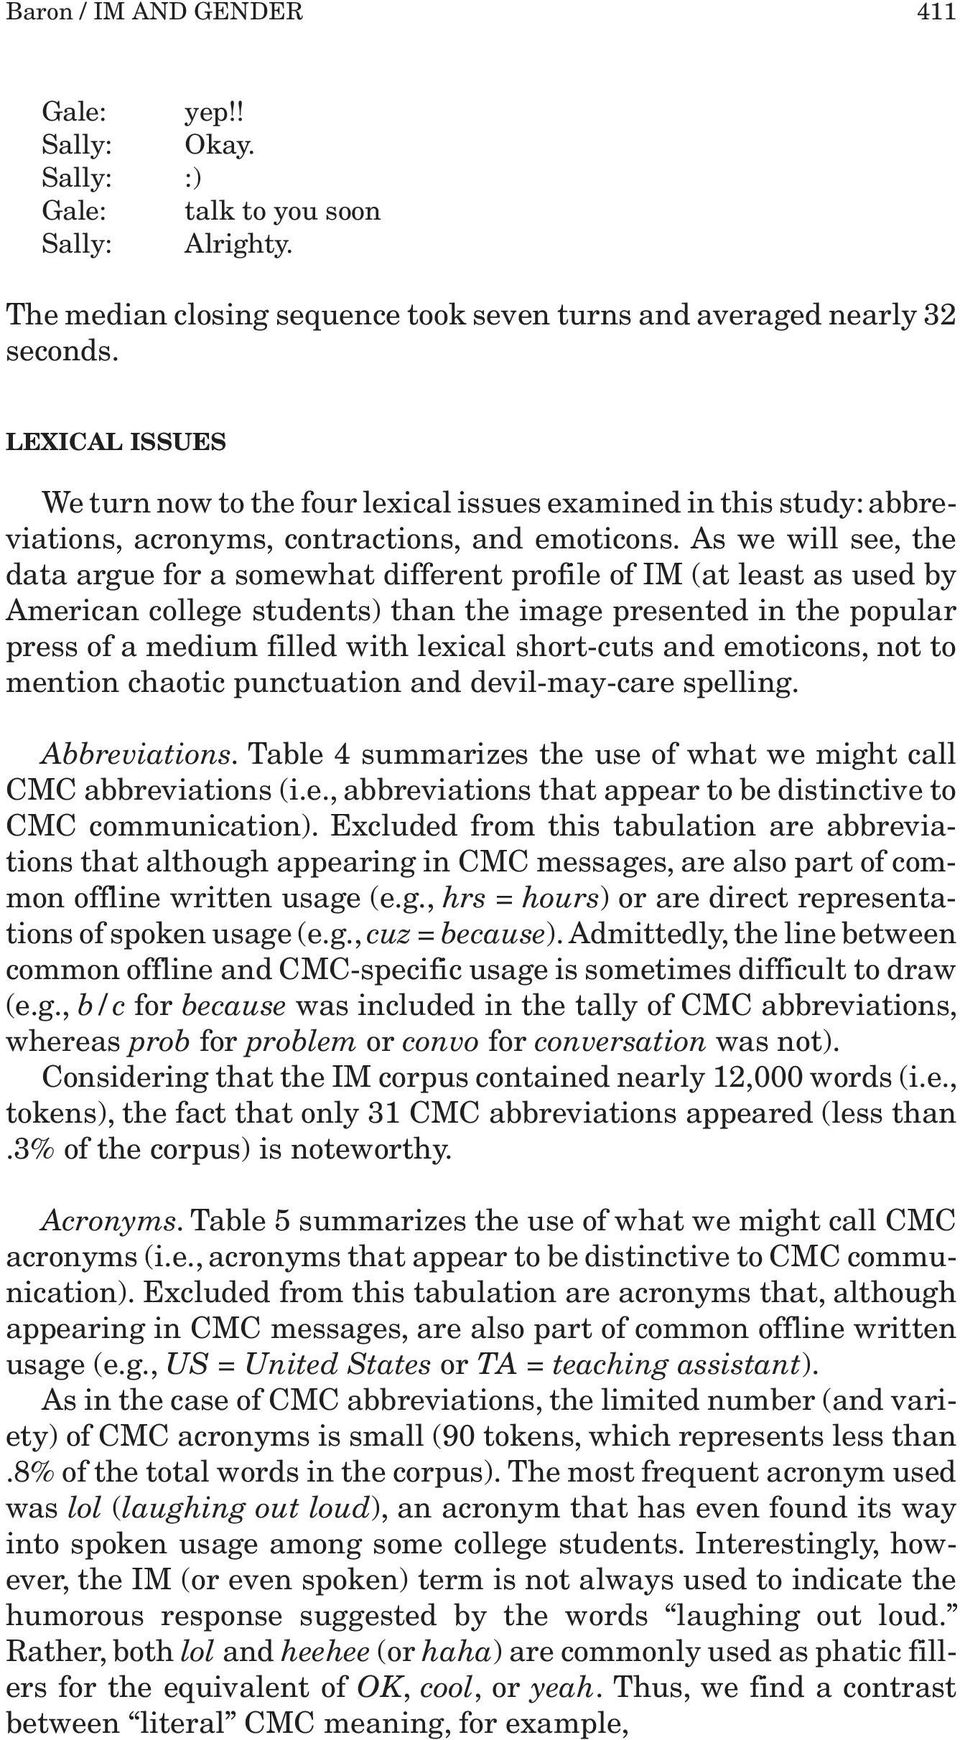 As we will see, the data argue for a somewhat different profile of IM (at least as used by American college students) than the image presented in the popular press of a medium filled with lexical